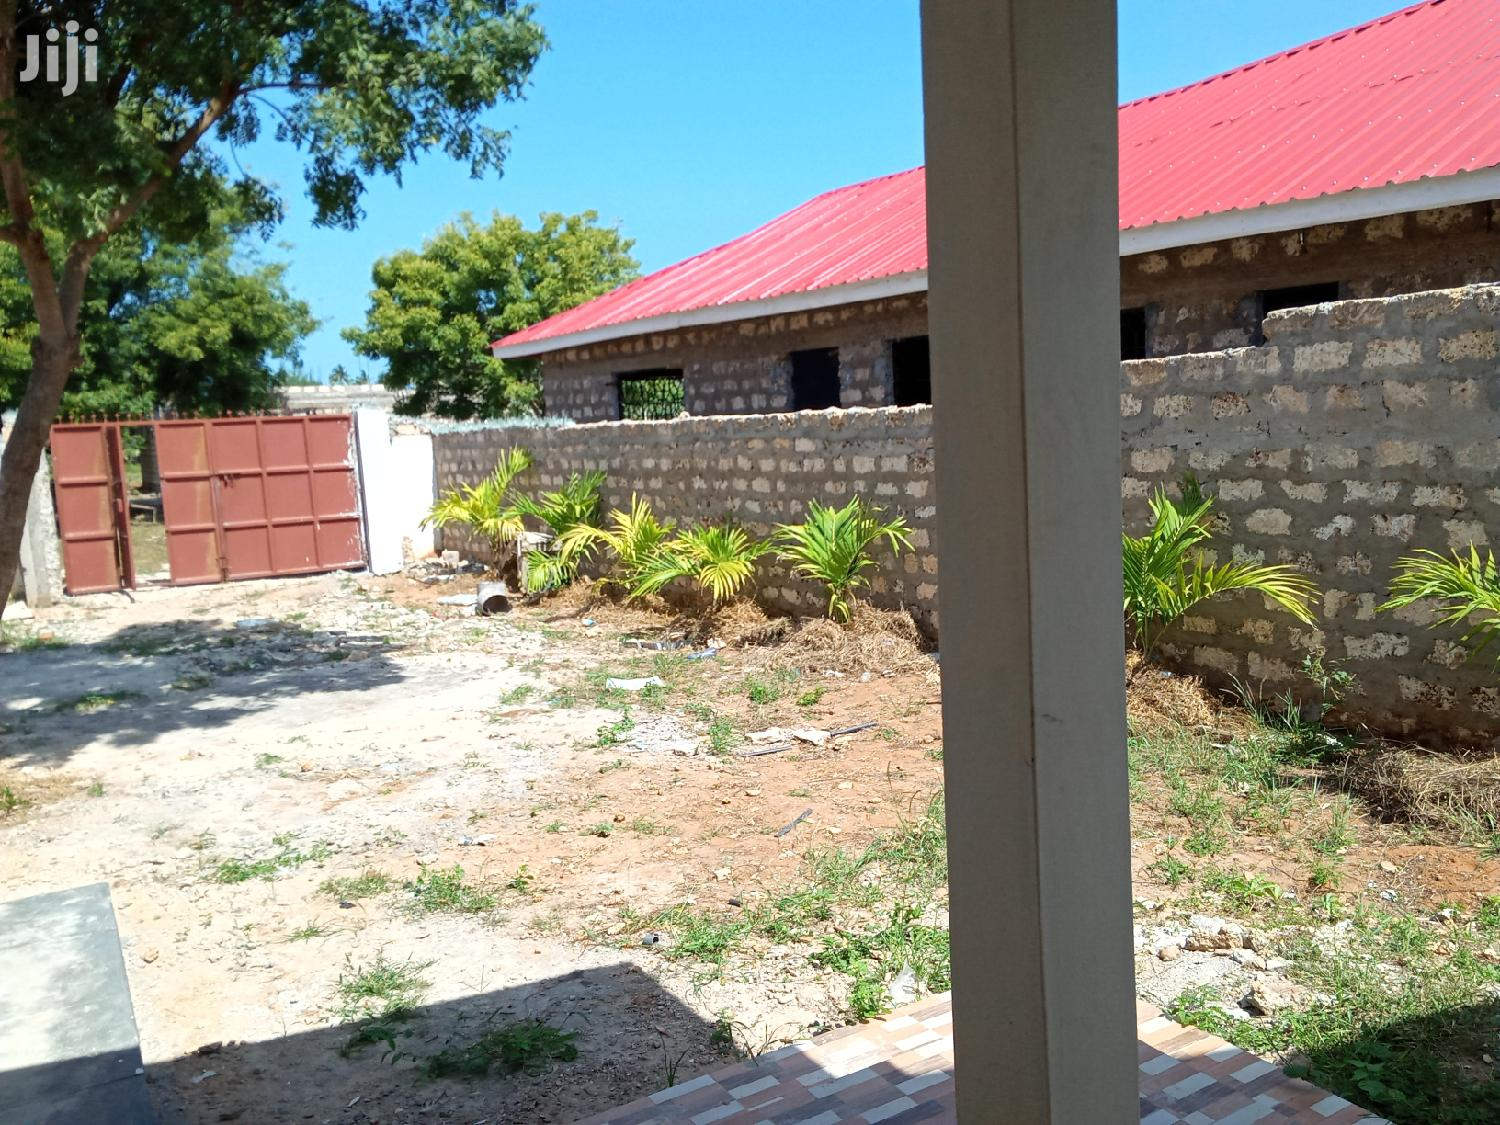 Kilifi 4 Bedroom Own Compound House For Sale | Houses & Apartments For Sale for sale in Tezo, Kilifi, Kenya